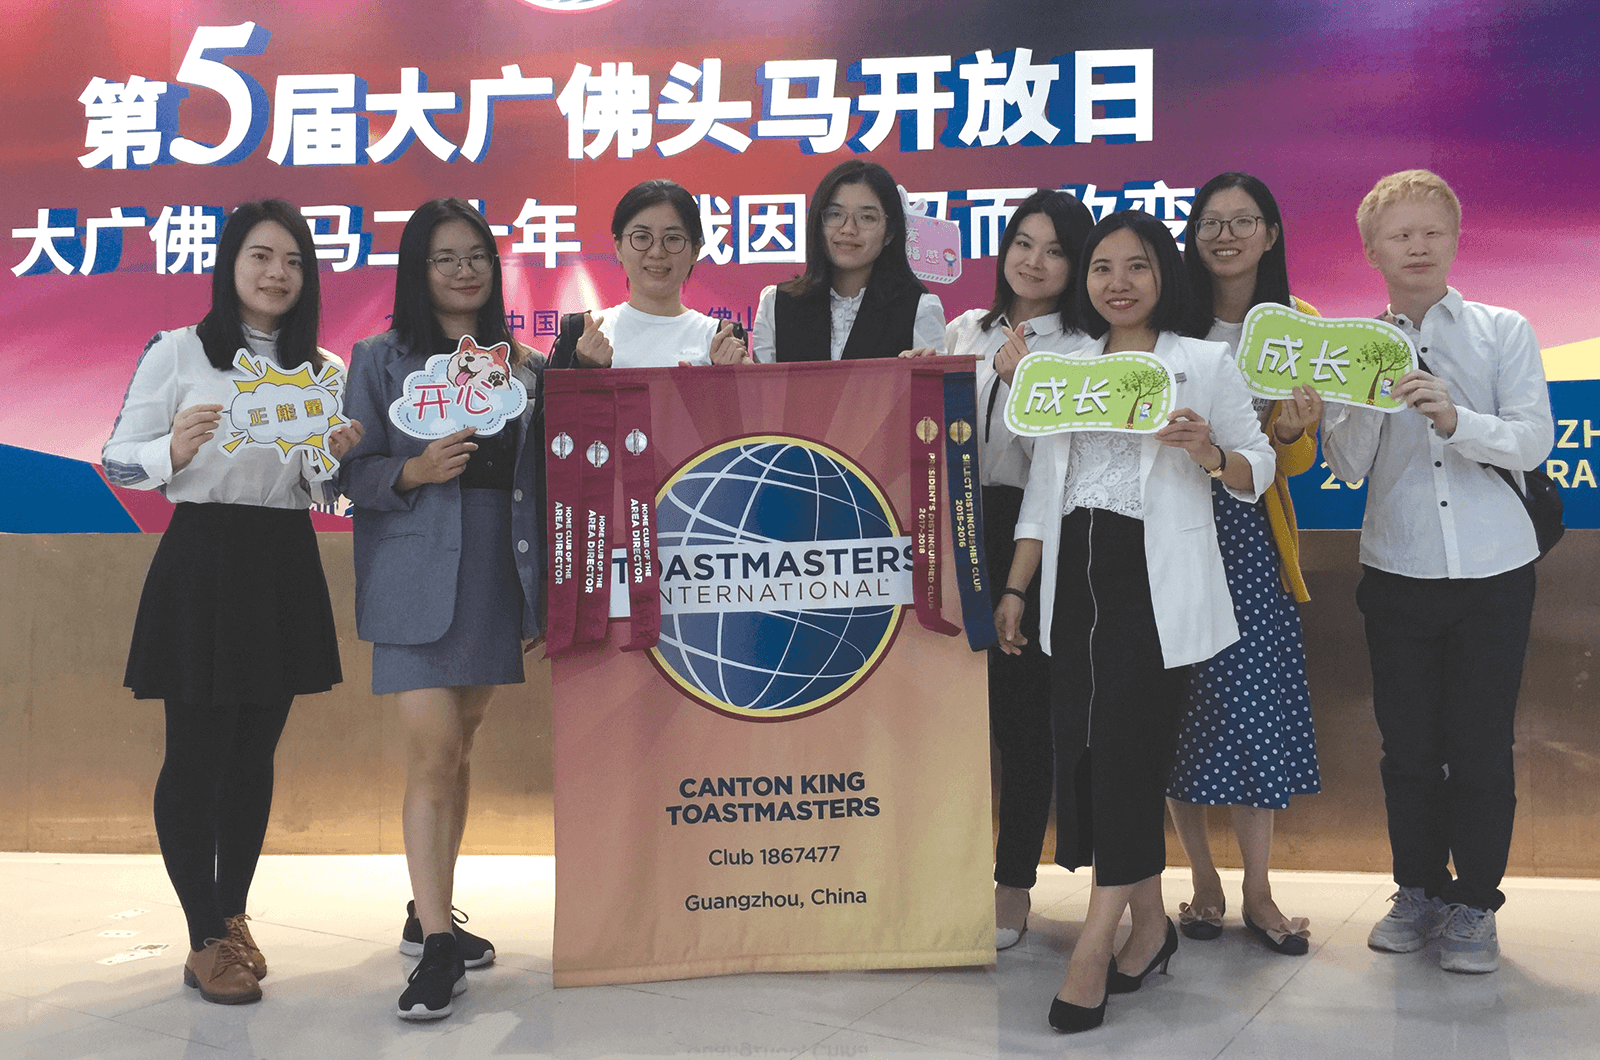 Group of Toastmasters holding club banner and signs